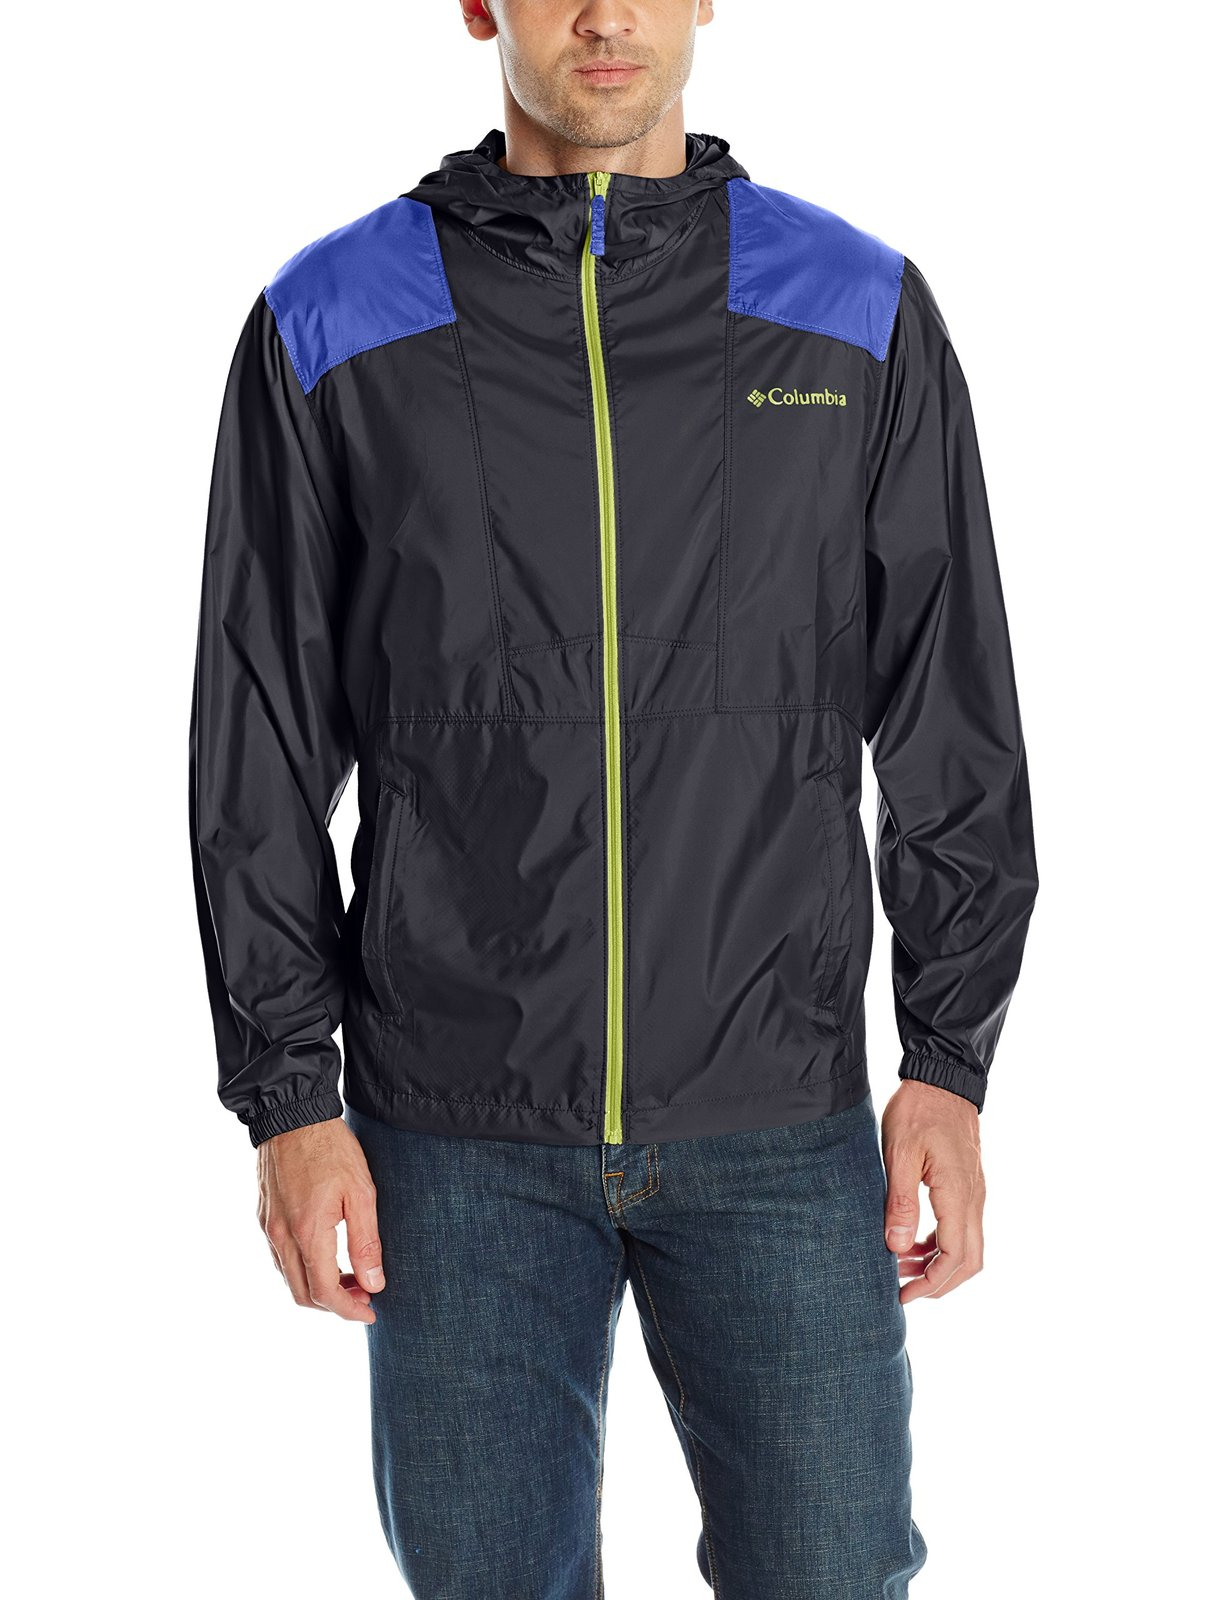 Columbia Men's Flashback Windbreaker, Black, Light Grape, Large